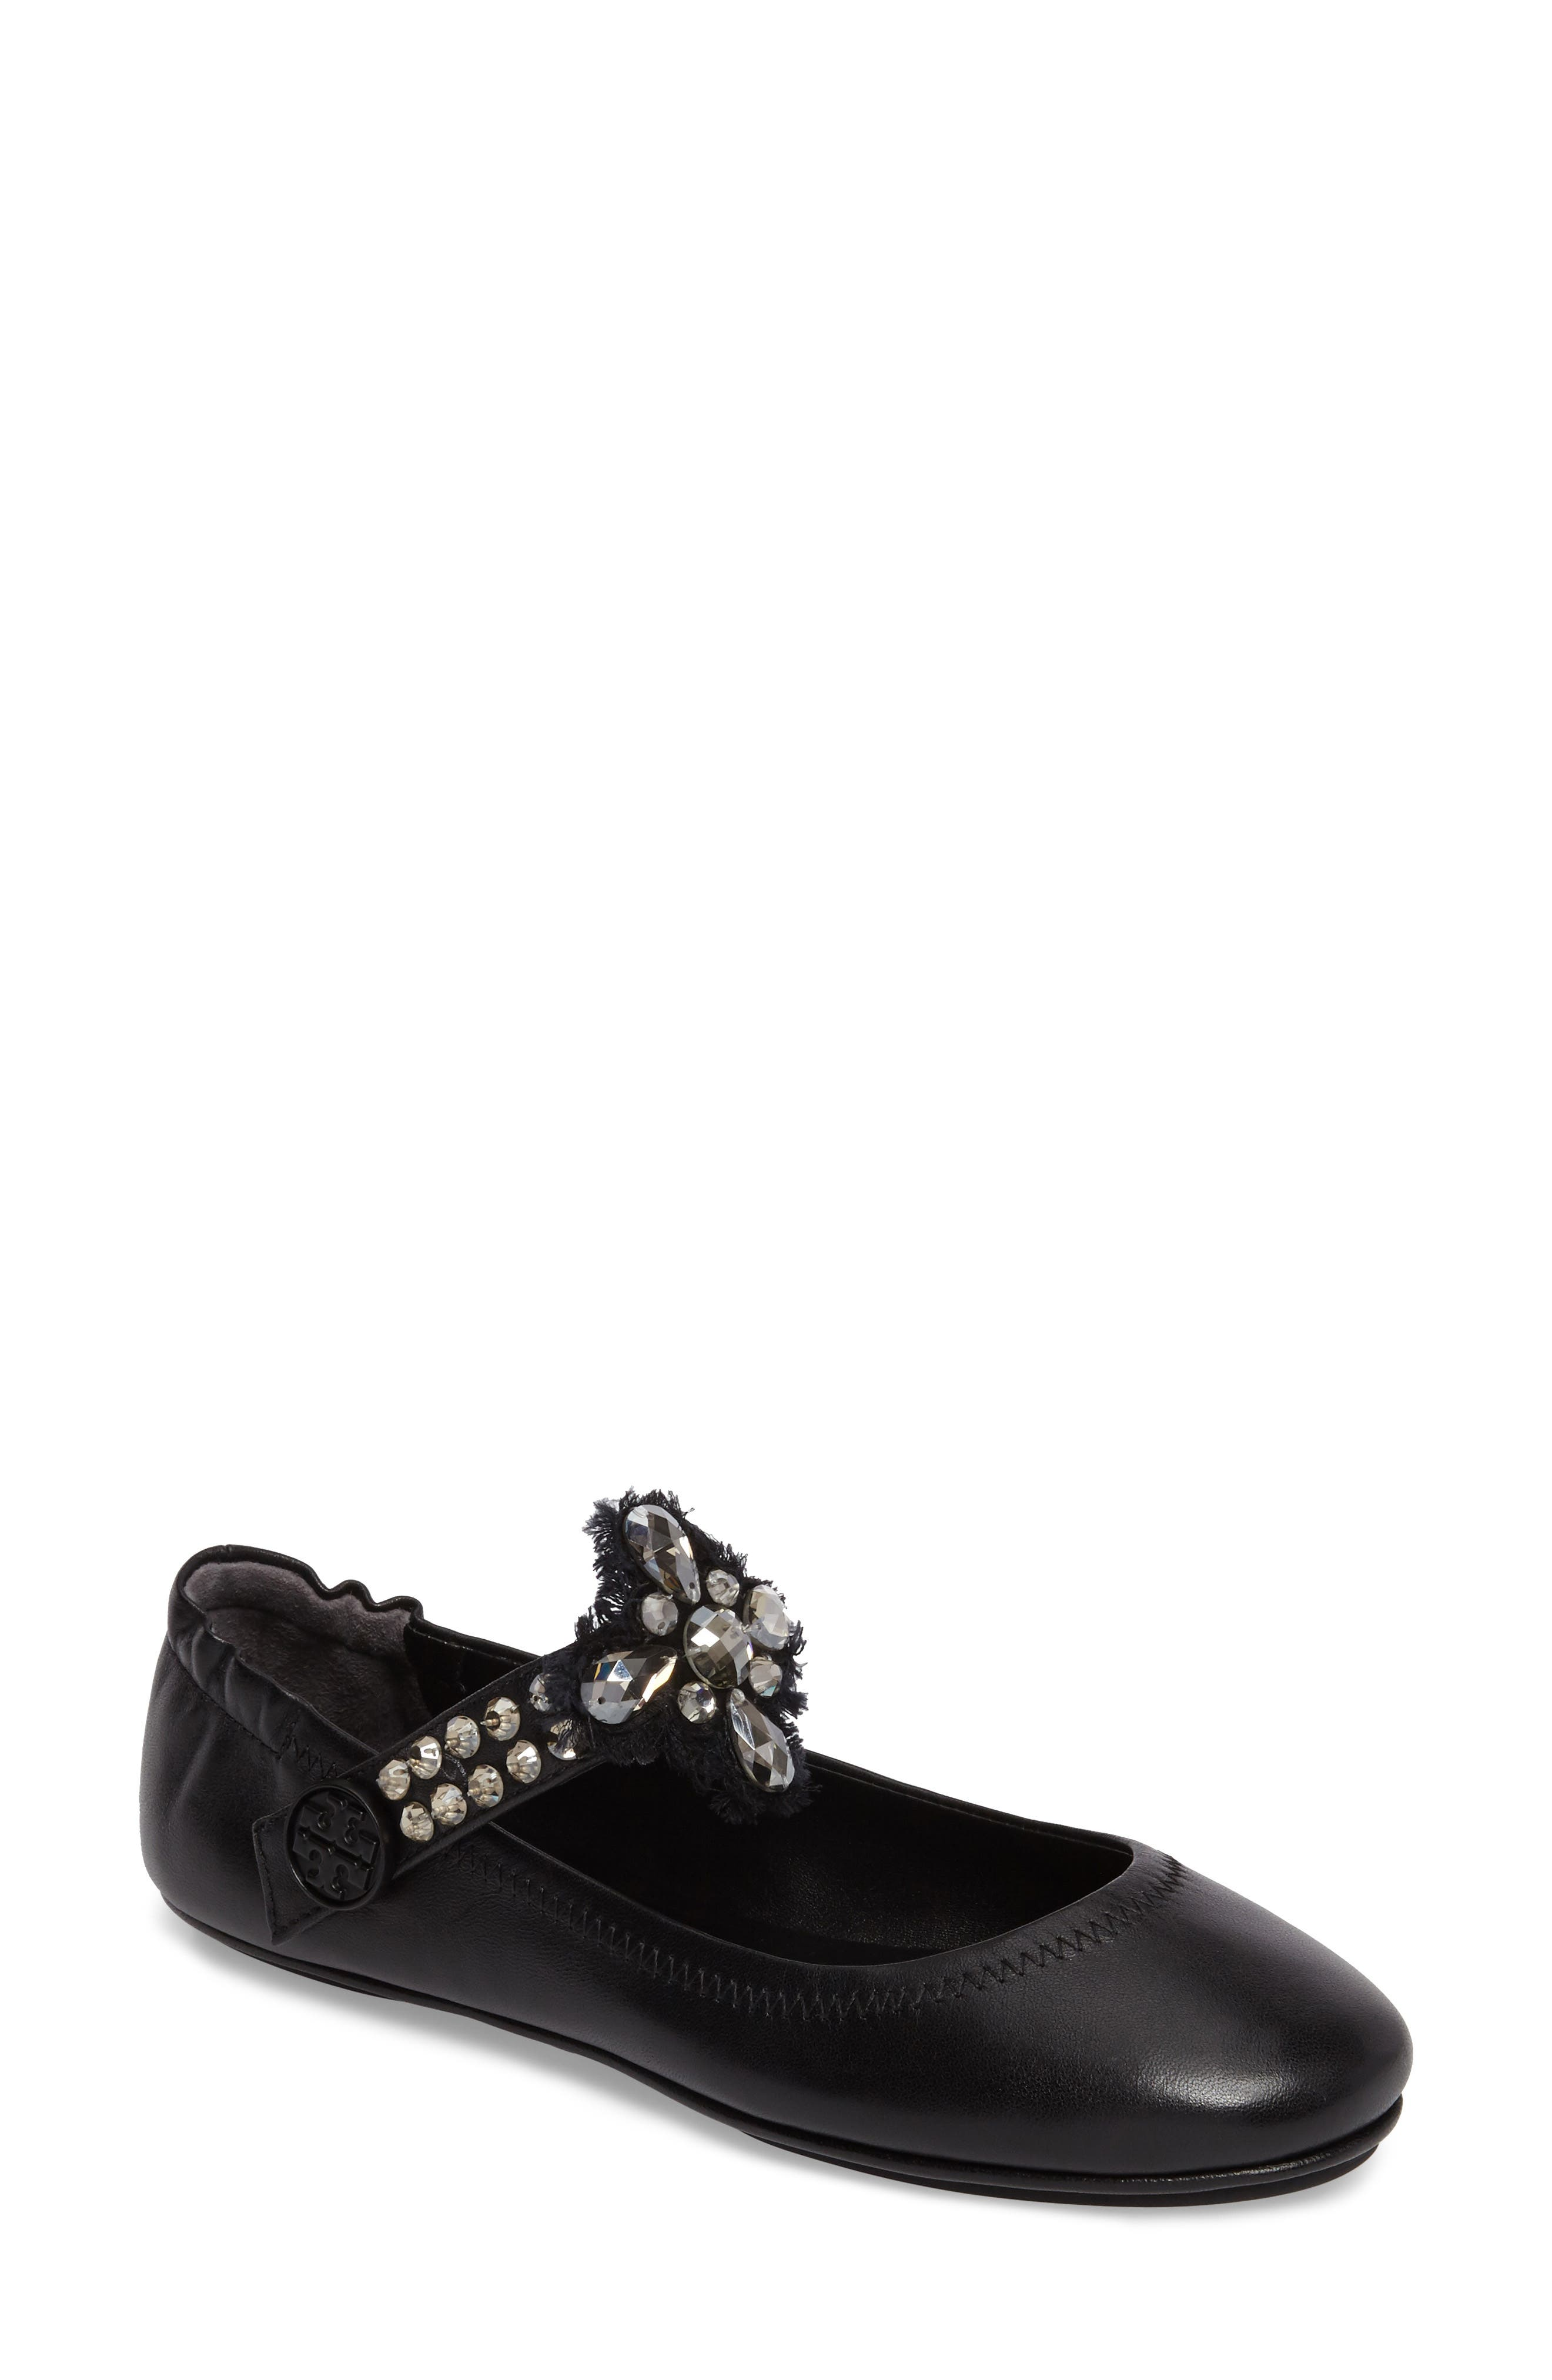 Minnie Embellished Convertible Strap Ballet Flat,                         Main,                         color, Black/ Clear